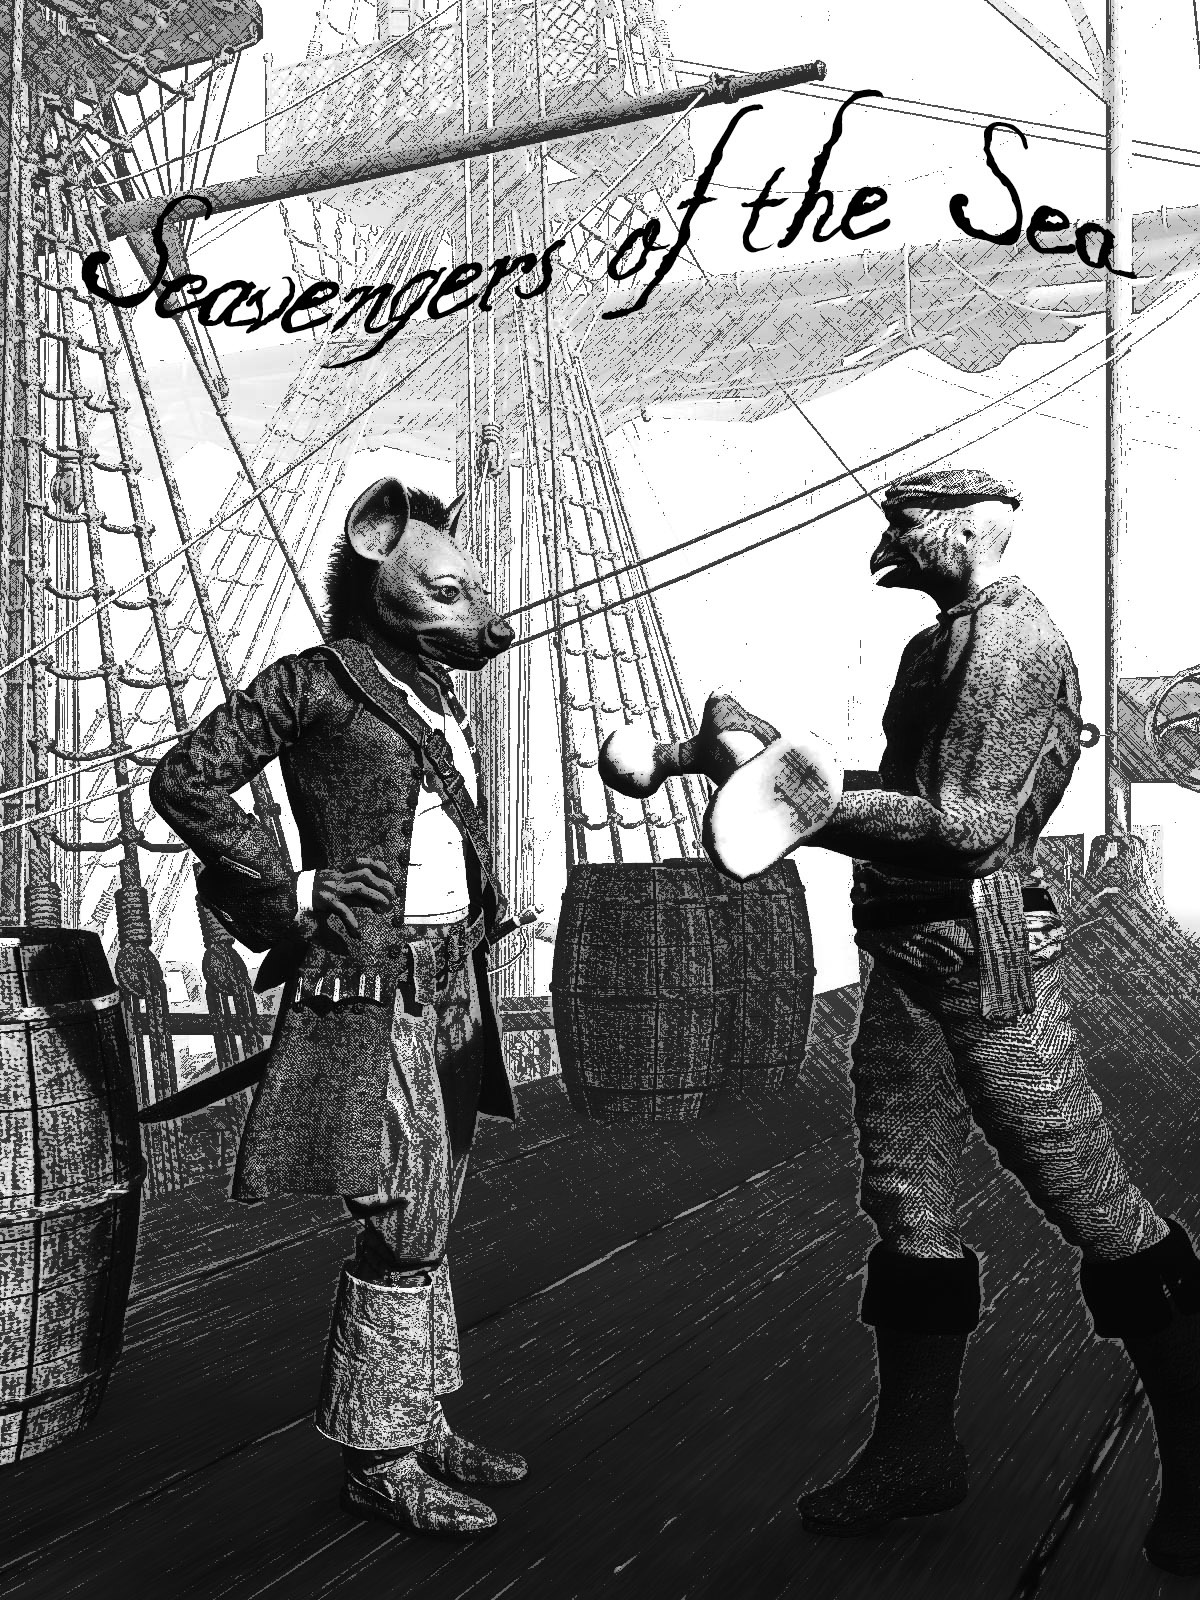 Scavengers of the Sea by rps53